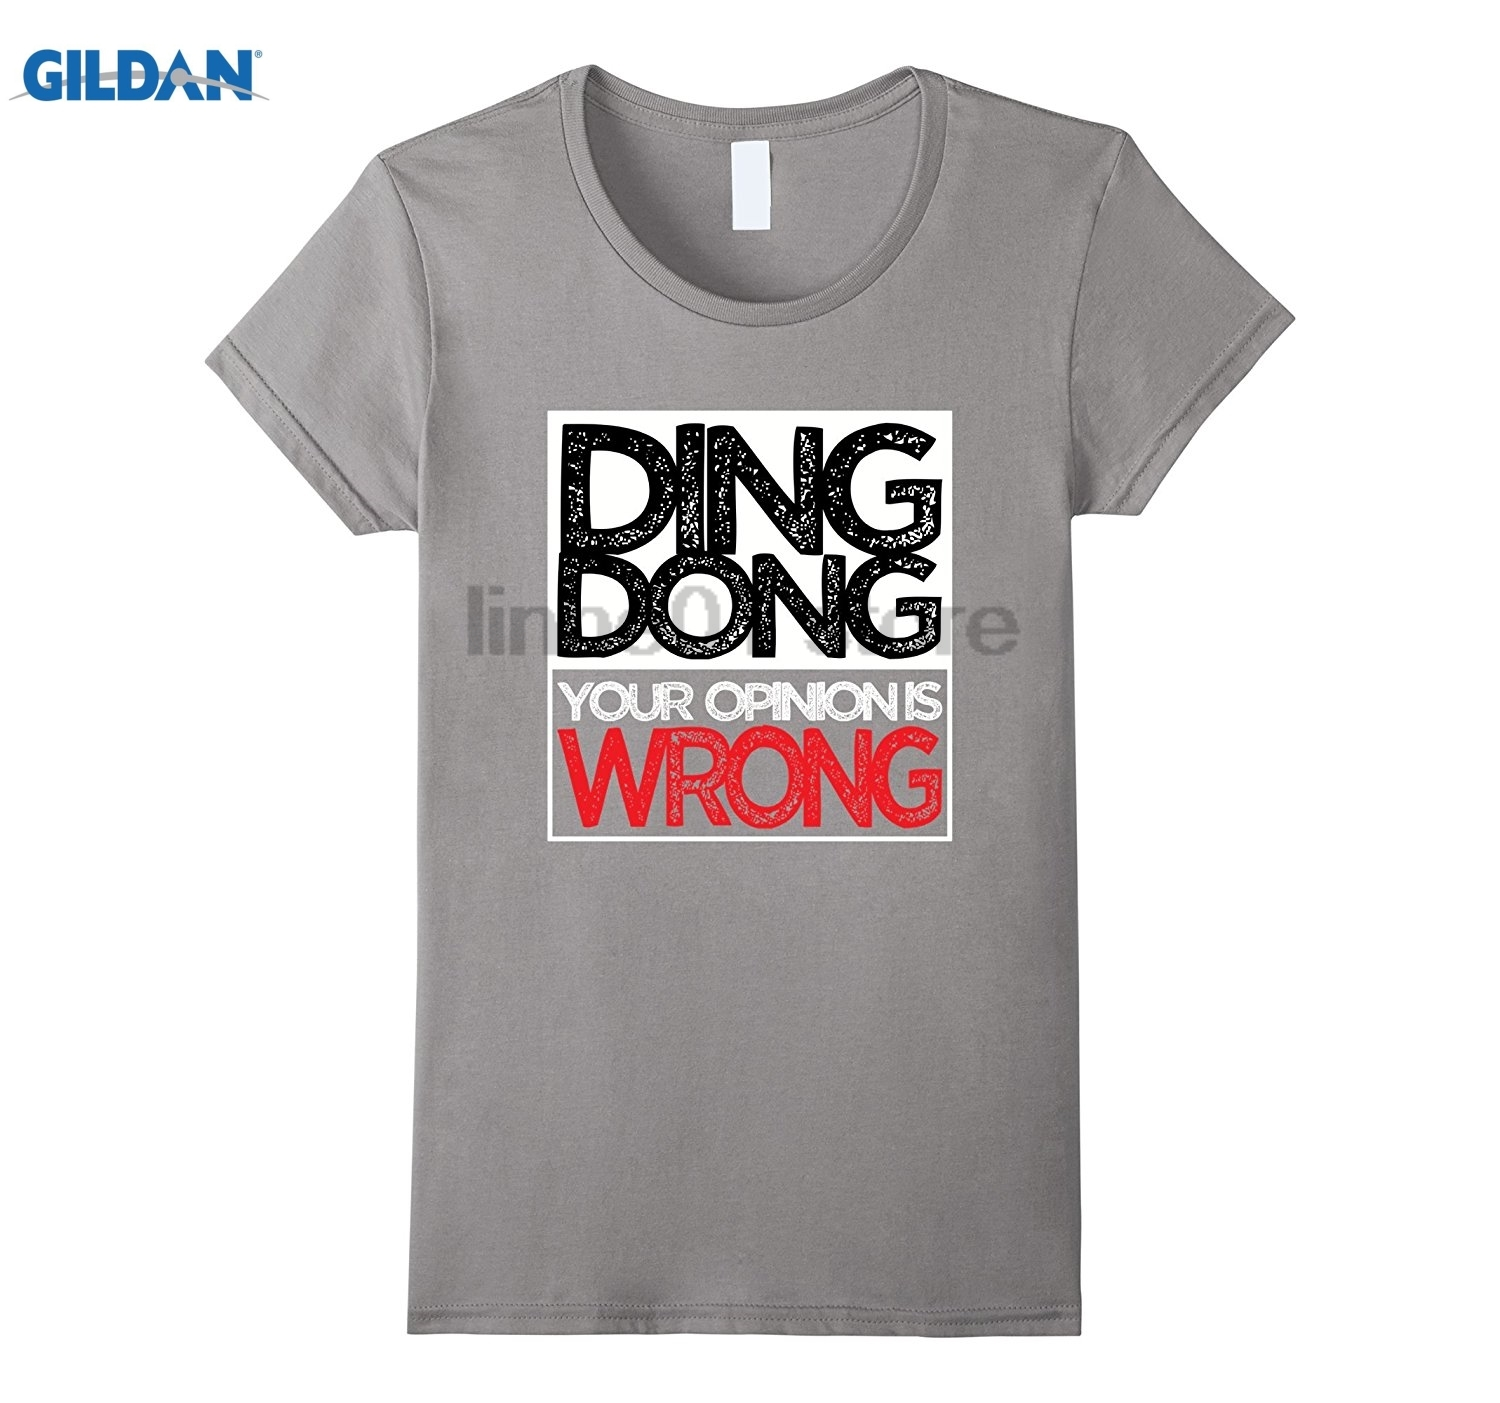 GILDAN Funny Snarky Sassy Ding Song Your Opinion is WRONG TShirt dress T-shirt